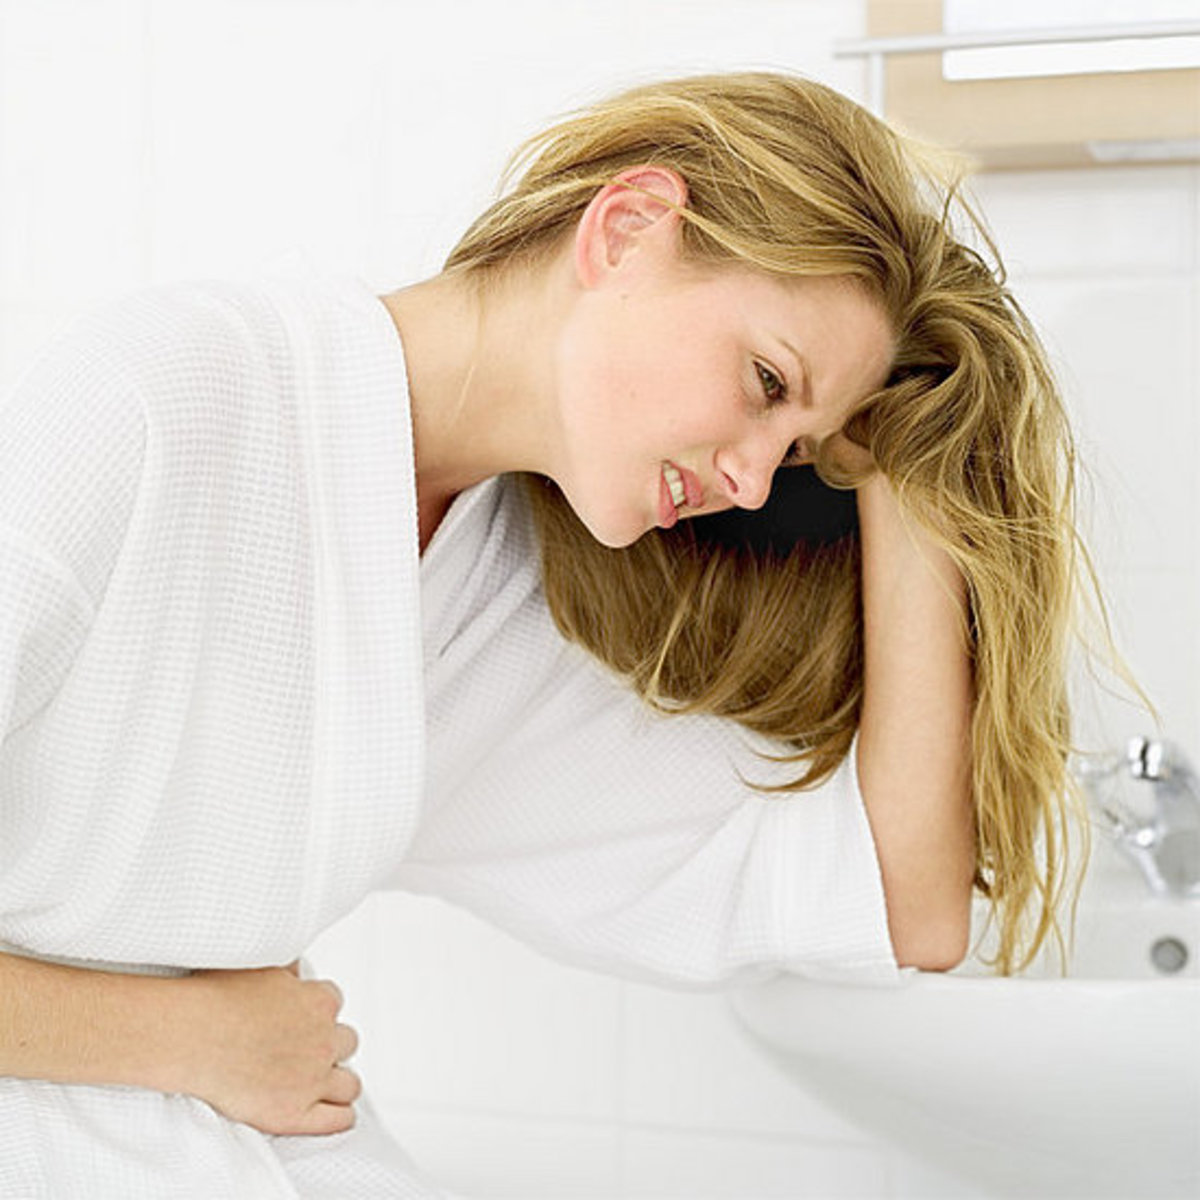 Why You Should See Your Doctor When Experiencing Severe Period Cramps or Pain